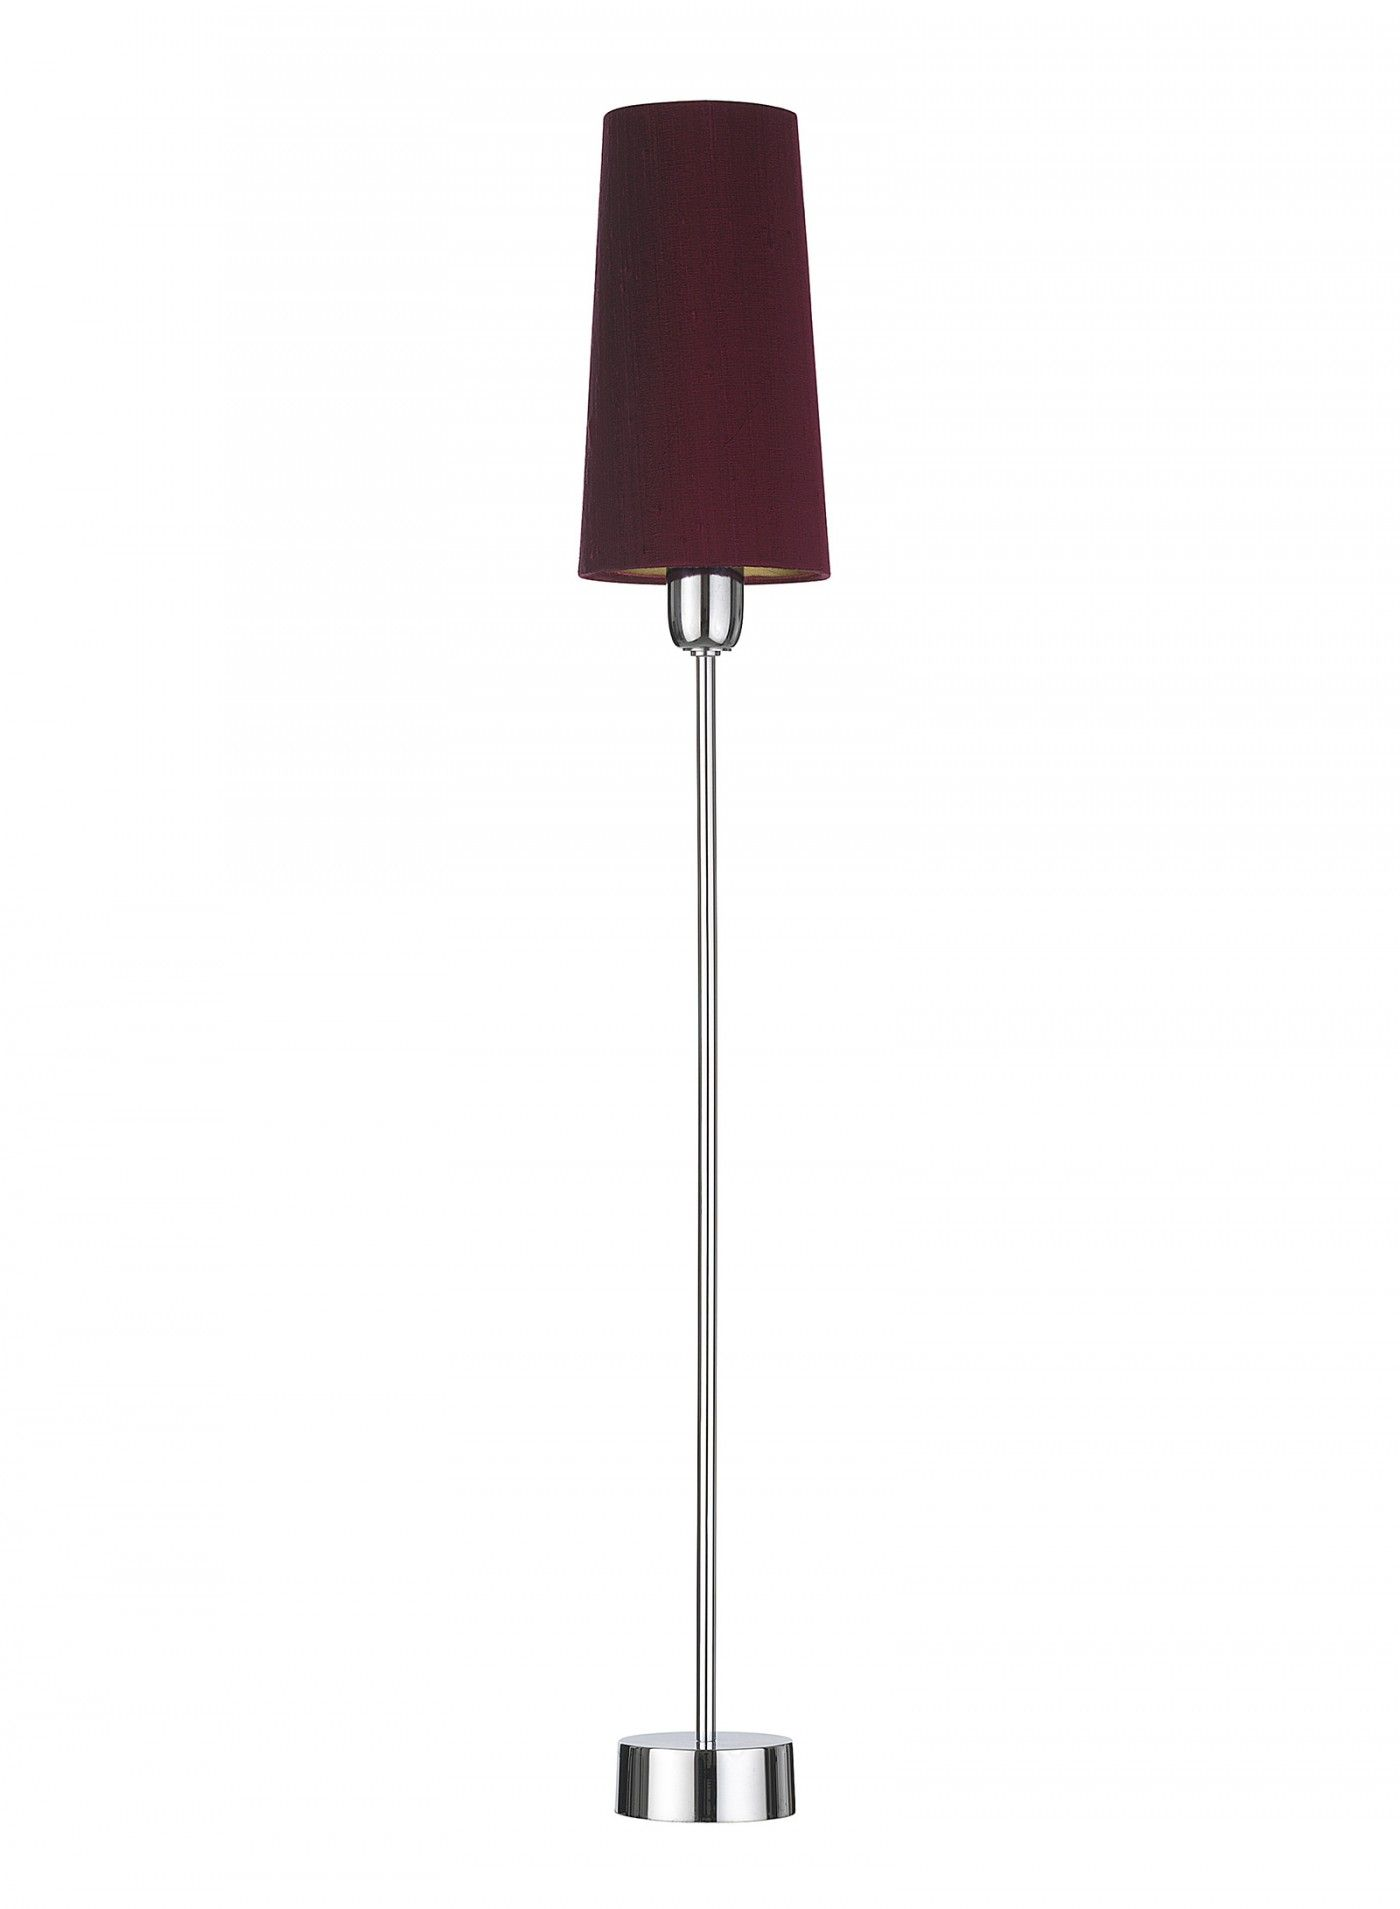 Piccolo chrome plum elegant and simple table lamp perfect for piccolo chrome plum elegant and simple table lamp perfect for mantelpieces and narrow areas geotapseo Images